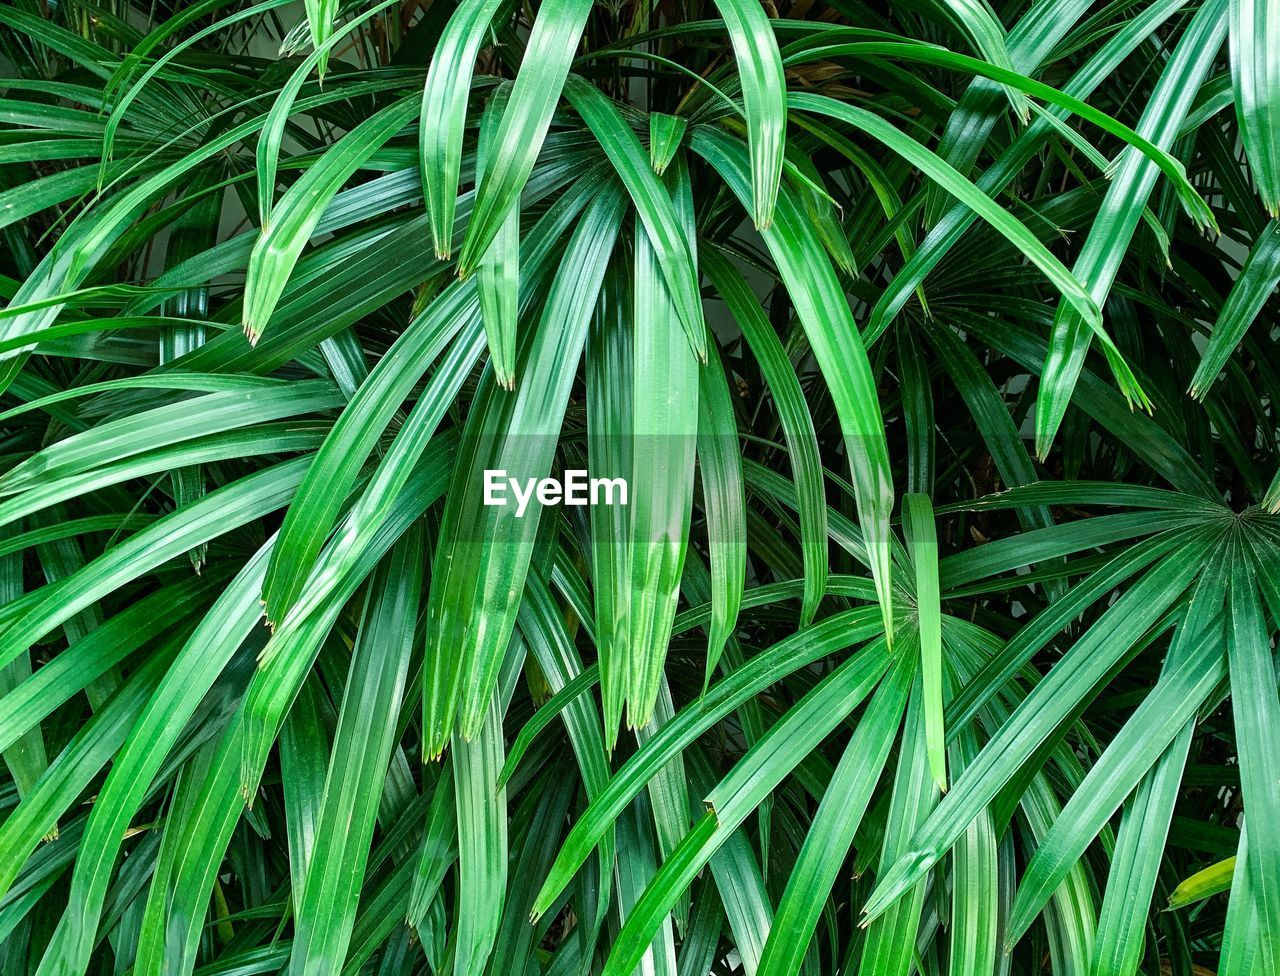 green color, full frame, backgrounds, plant, growth, beauty in nature, leaf, nature, no people, plant part, close-up, day, grass, field, land, high angle view, outdoors, freshness, lush foliage, agriculture, blade of grass, palm leaf